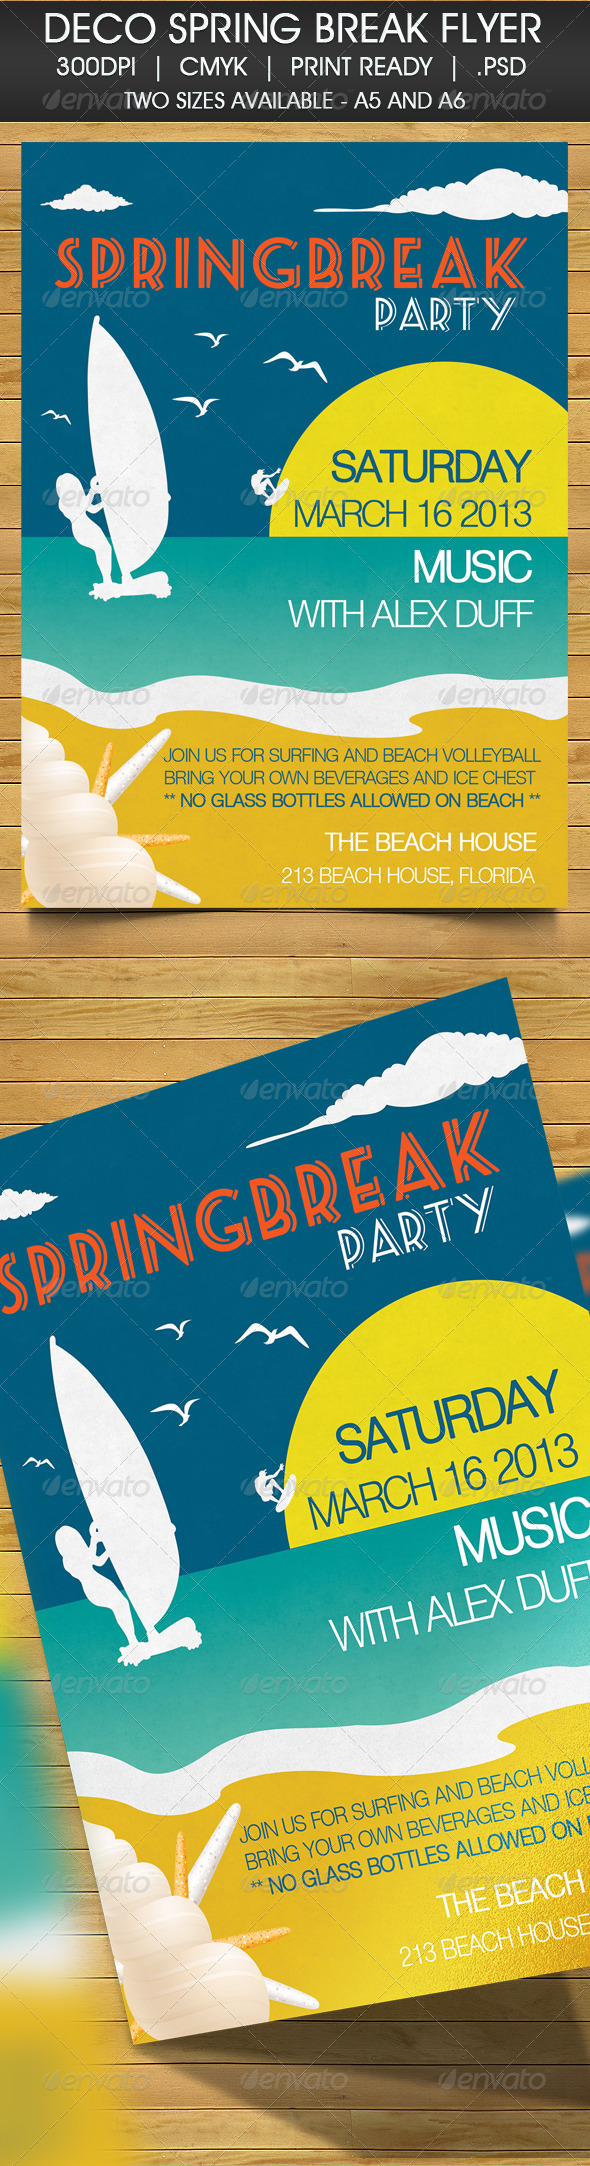 GraphicRiver Deco Spring Break Beach Party Invitation 4126301